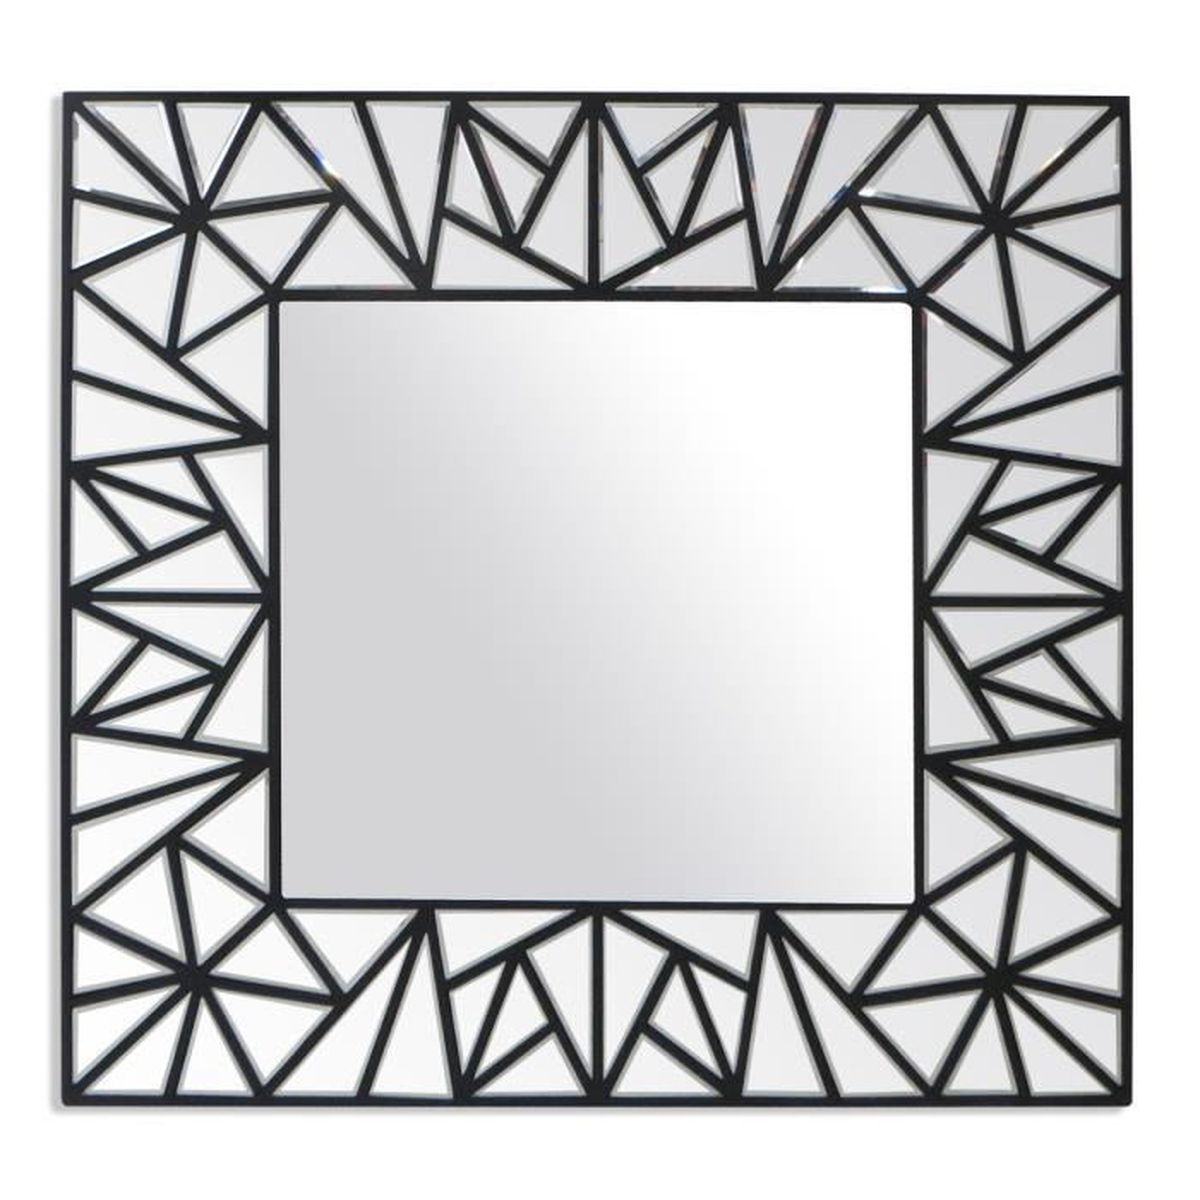 miroir design mosaique noir achat vente miroir soldes d t cdiscount. Black Bedroom Furniture Sets. Home Design Ideas